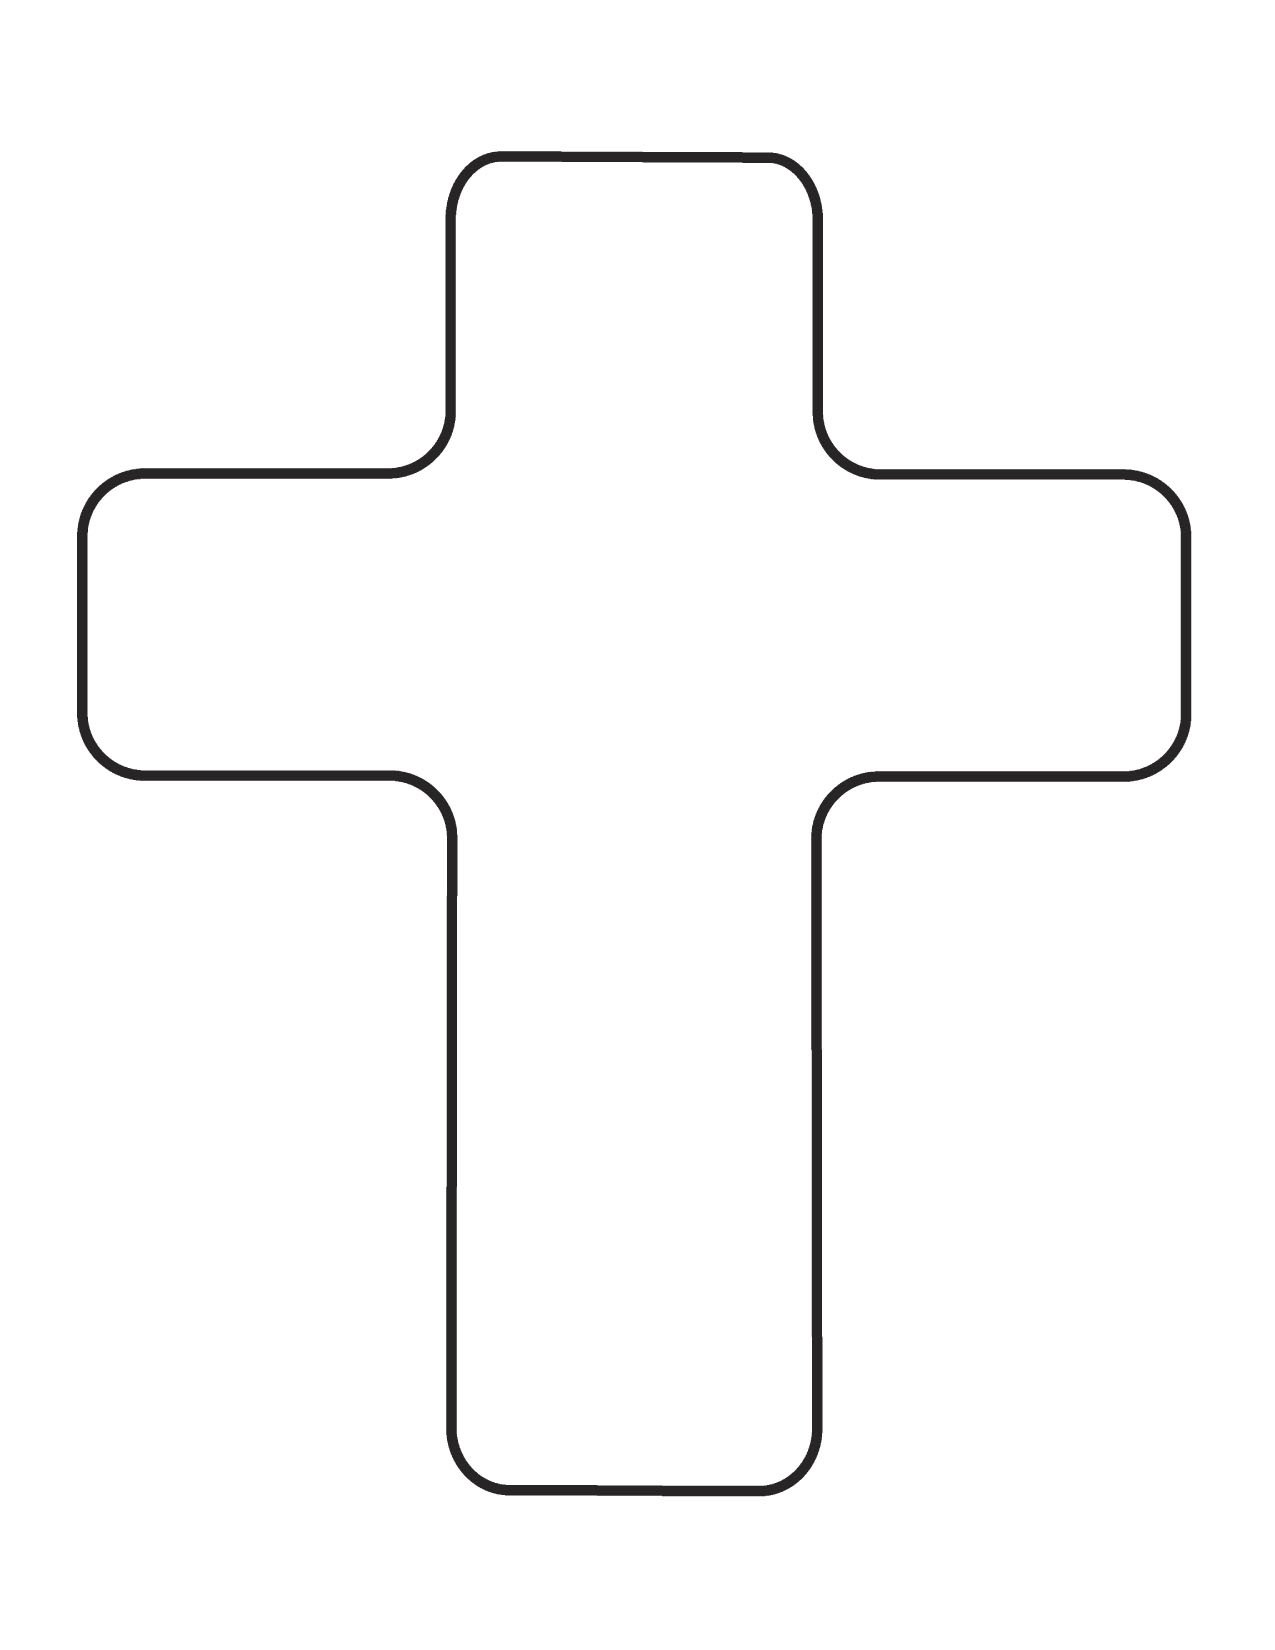 Free Cross Images Free, Download Free Clip Art, Free Clip Art On - Free Printable Cross